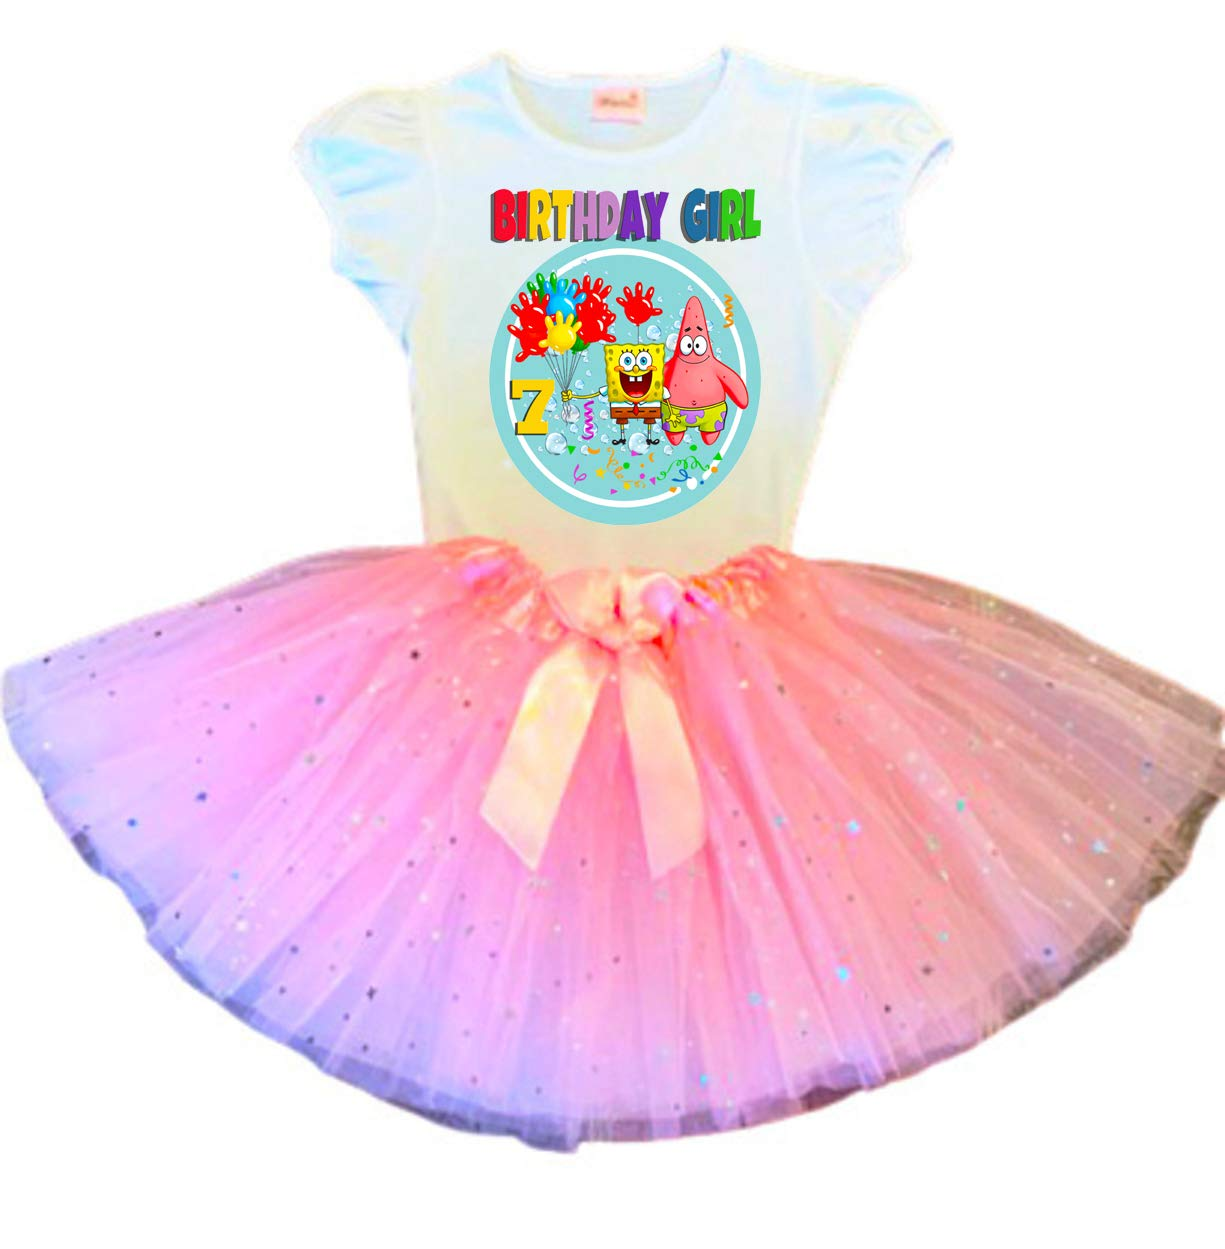 Spring new work SpongeBob Birthday Tutu 7th Pink Max 74% OFF Dress Outfi Party